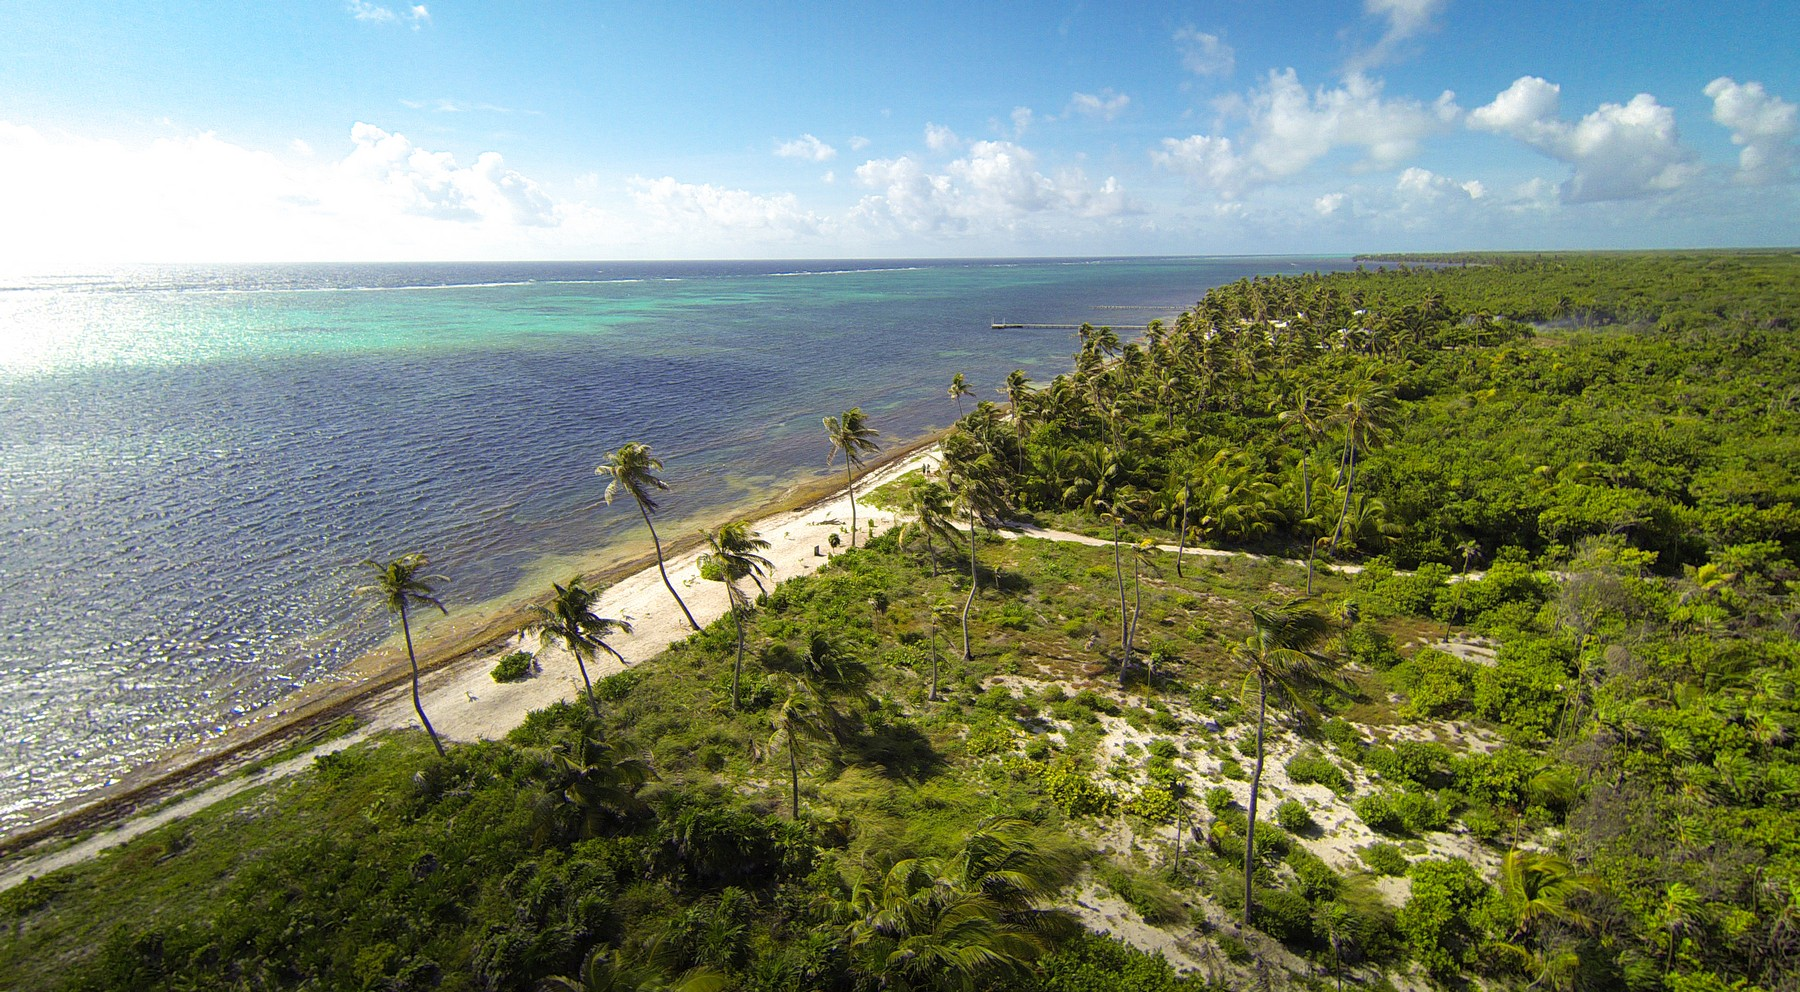 Land for Sale at Residential Opportunity San Pedro Town, Ambergris Caye Belize